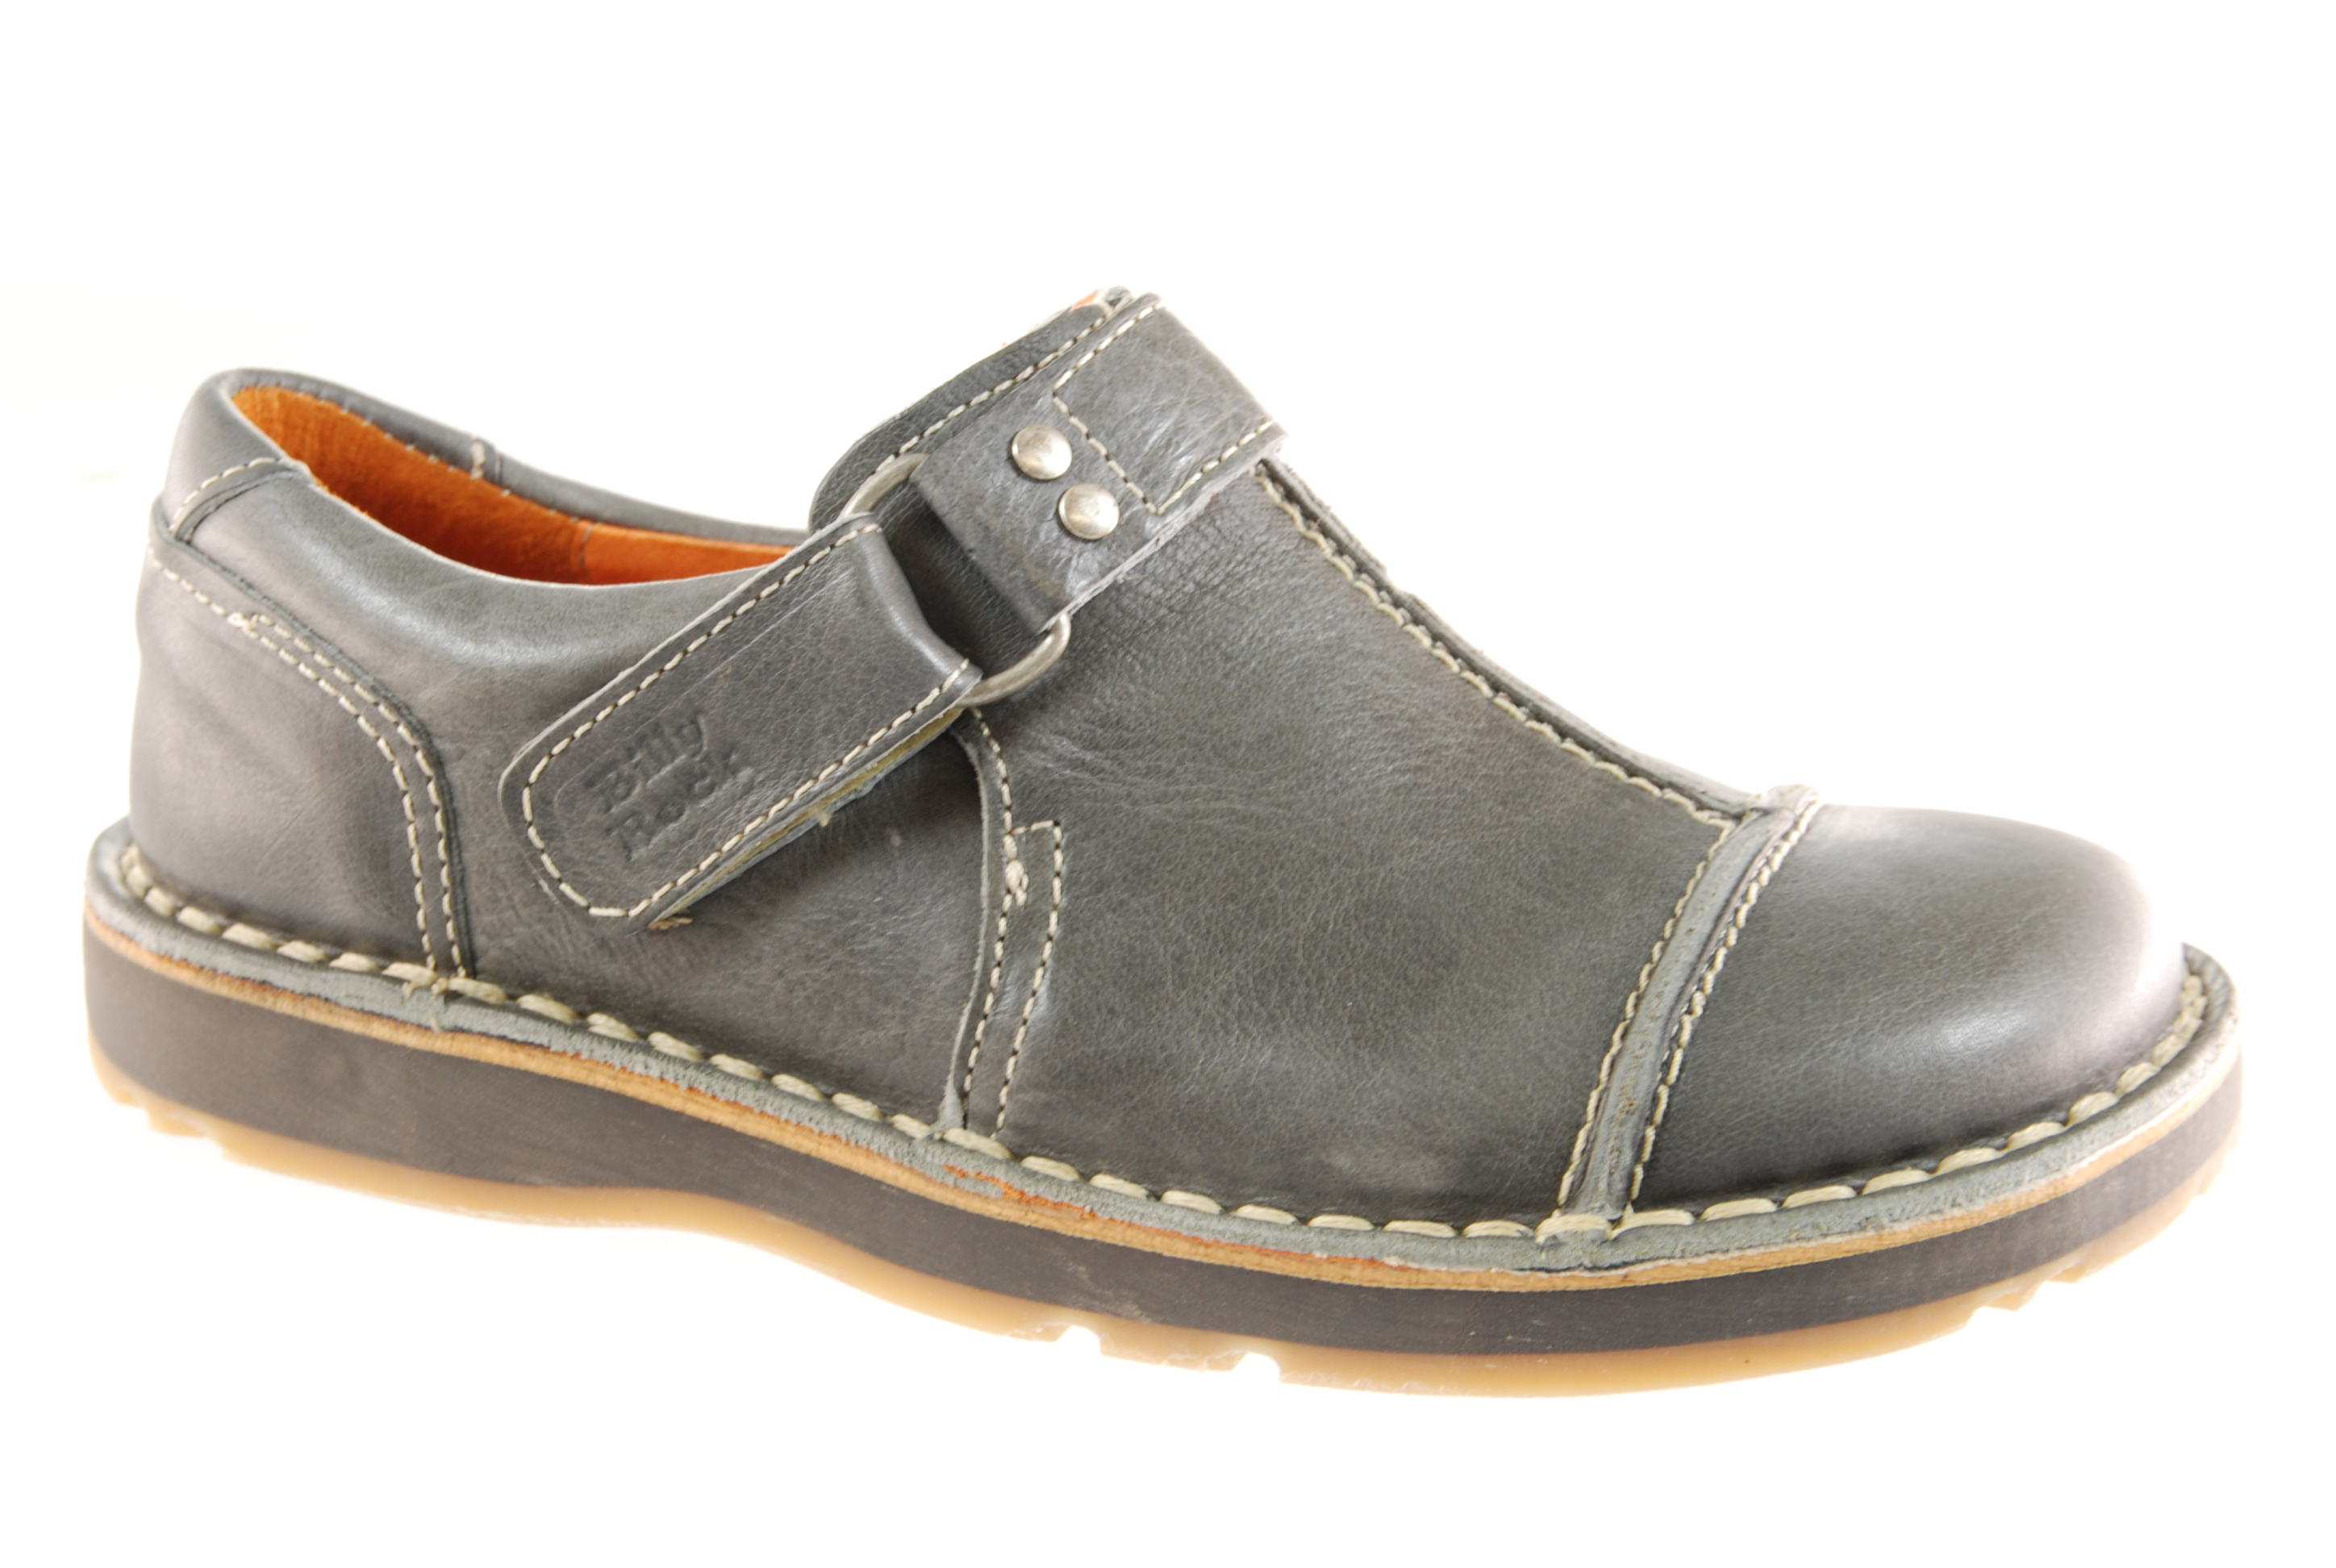 Lisa Tucci Shoes Online